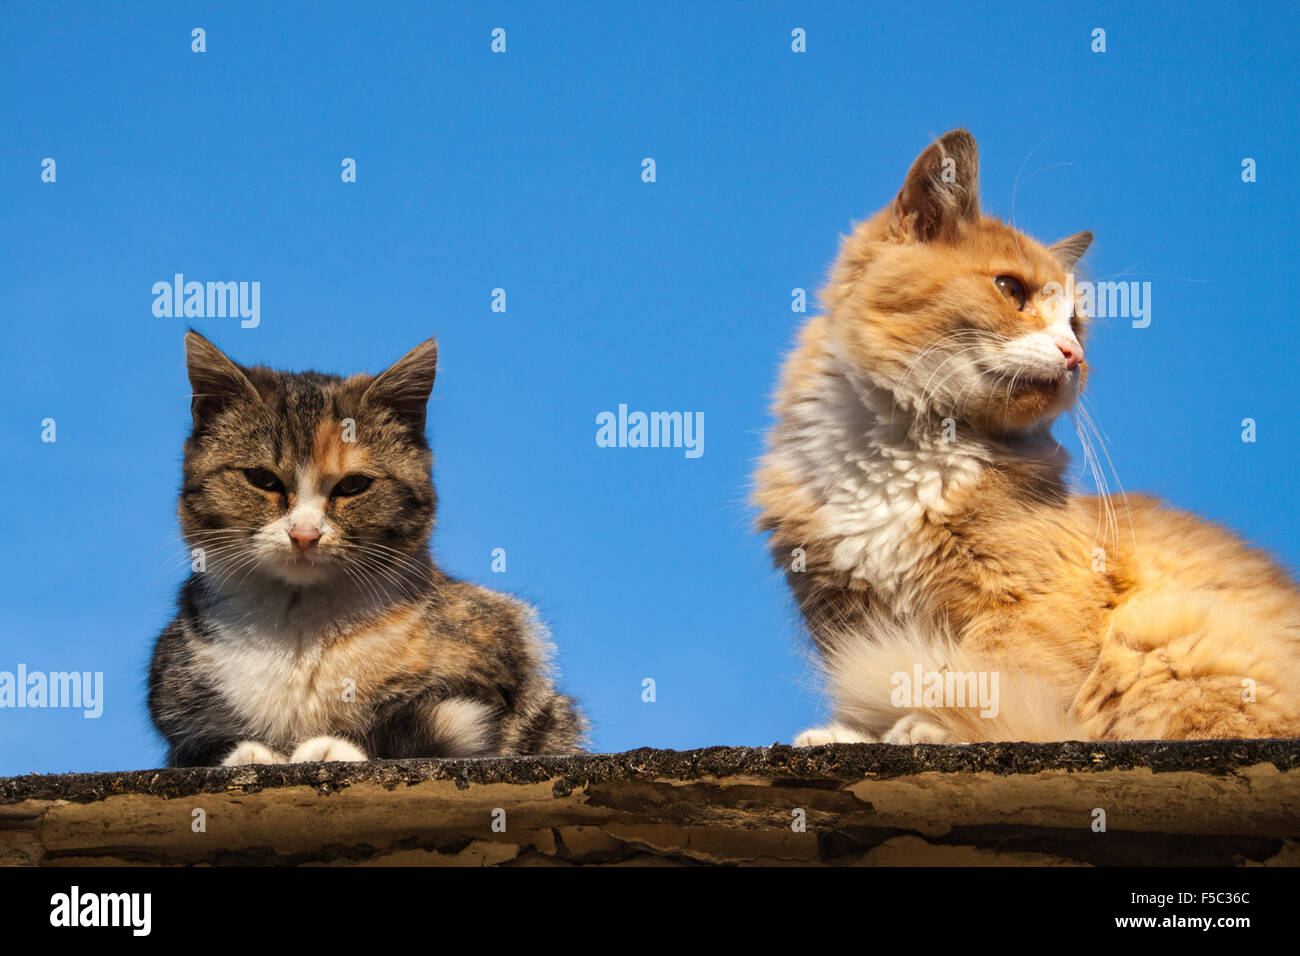 two house cats, one red and white, theo other tabby colored, sitting on top of a Roof. Backdrop blue Autumn Sky. - Stock Image